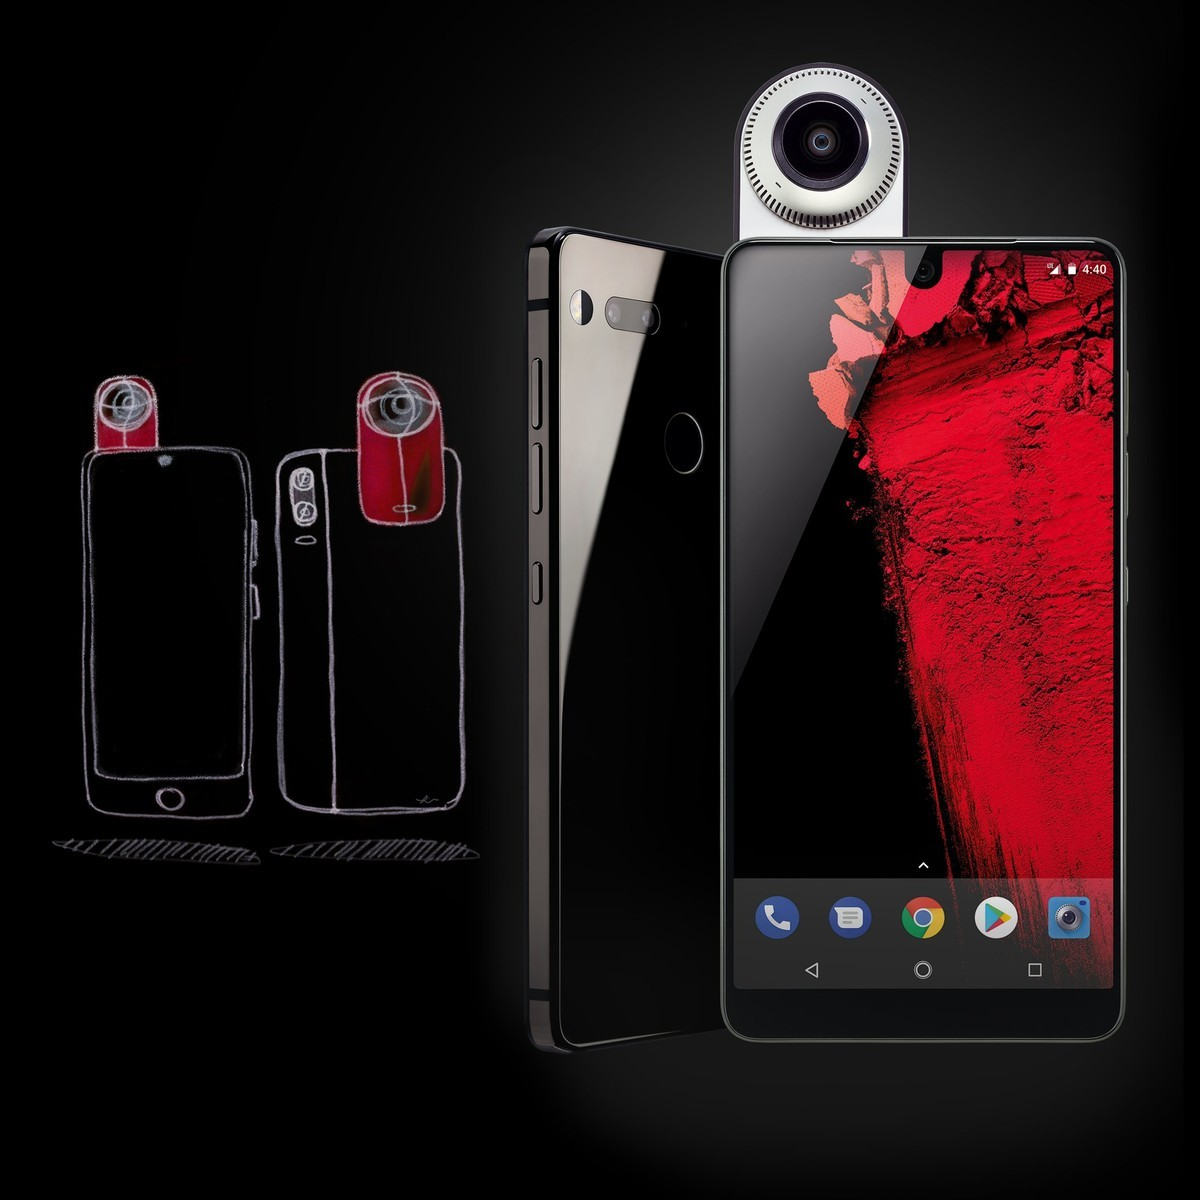 Essential Phone is out for sale!